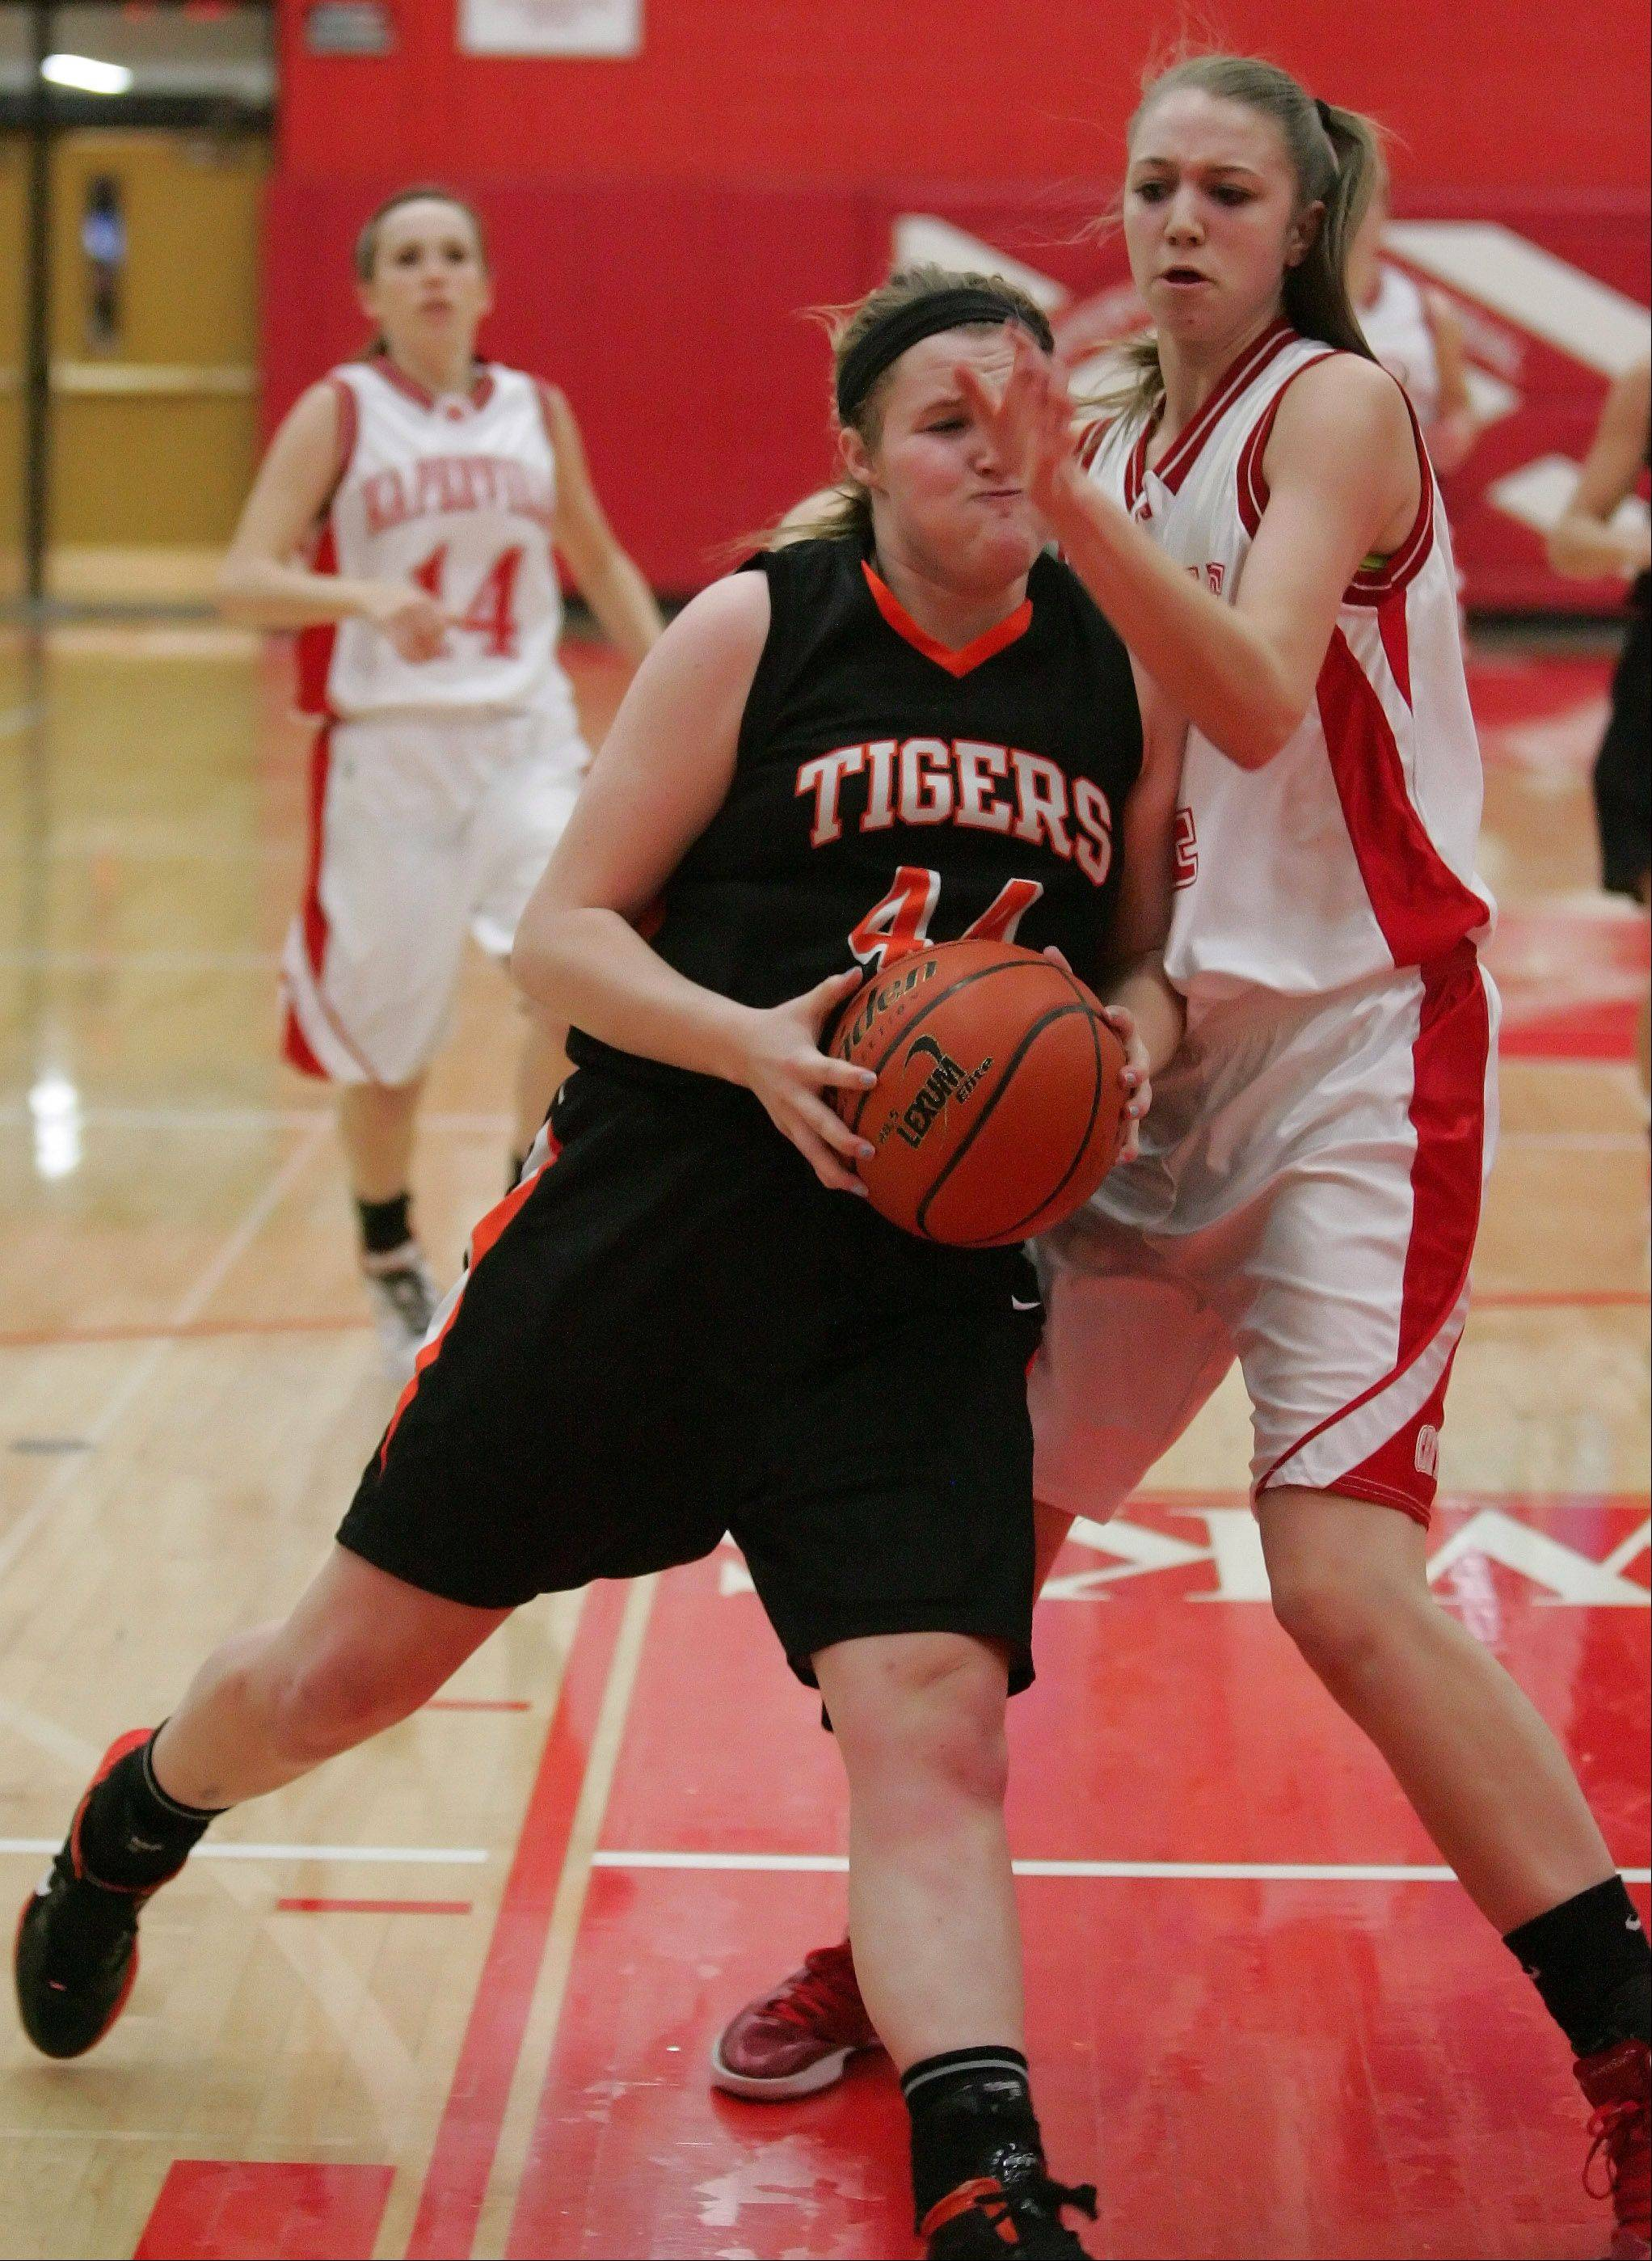 Olivia Linebarger, left, of Wheaton Warrenville South collides with Jamie Cuny of Naperville Central as she moves towards the basket in girls basketball action on Tuesday in Naperville.